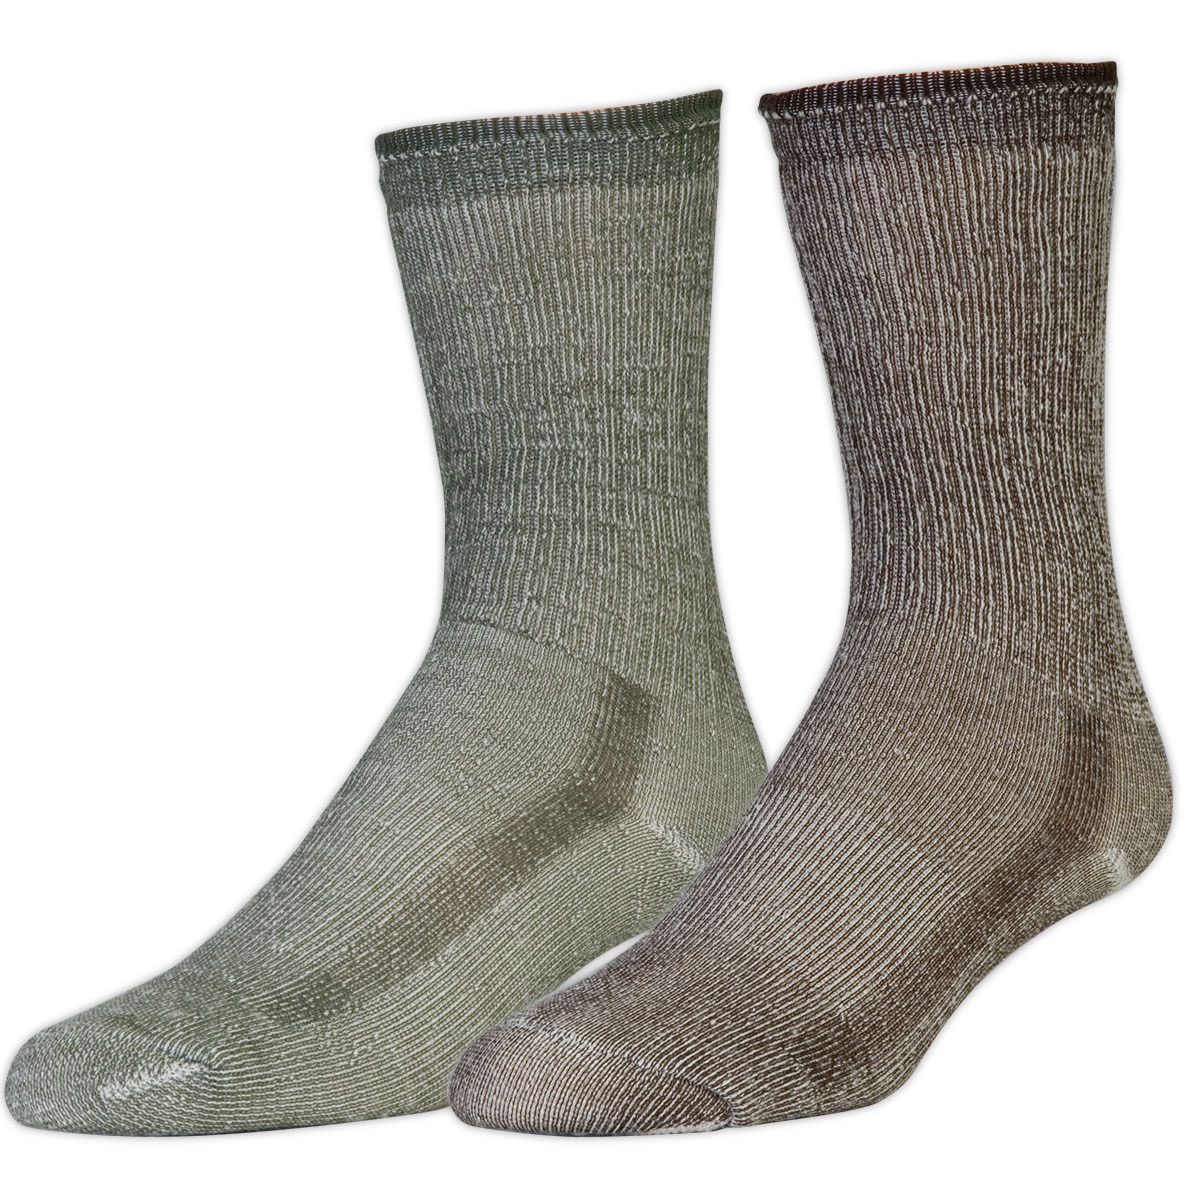 EMS Merino Wool Hiking Socks